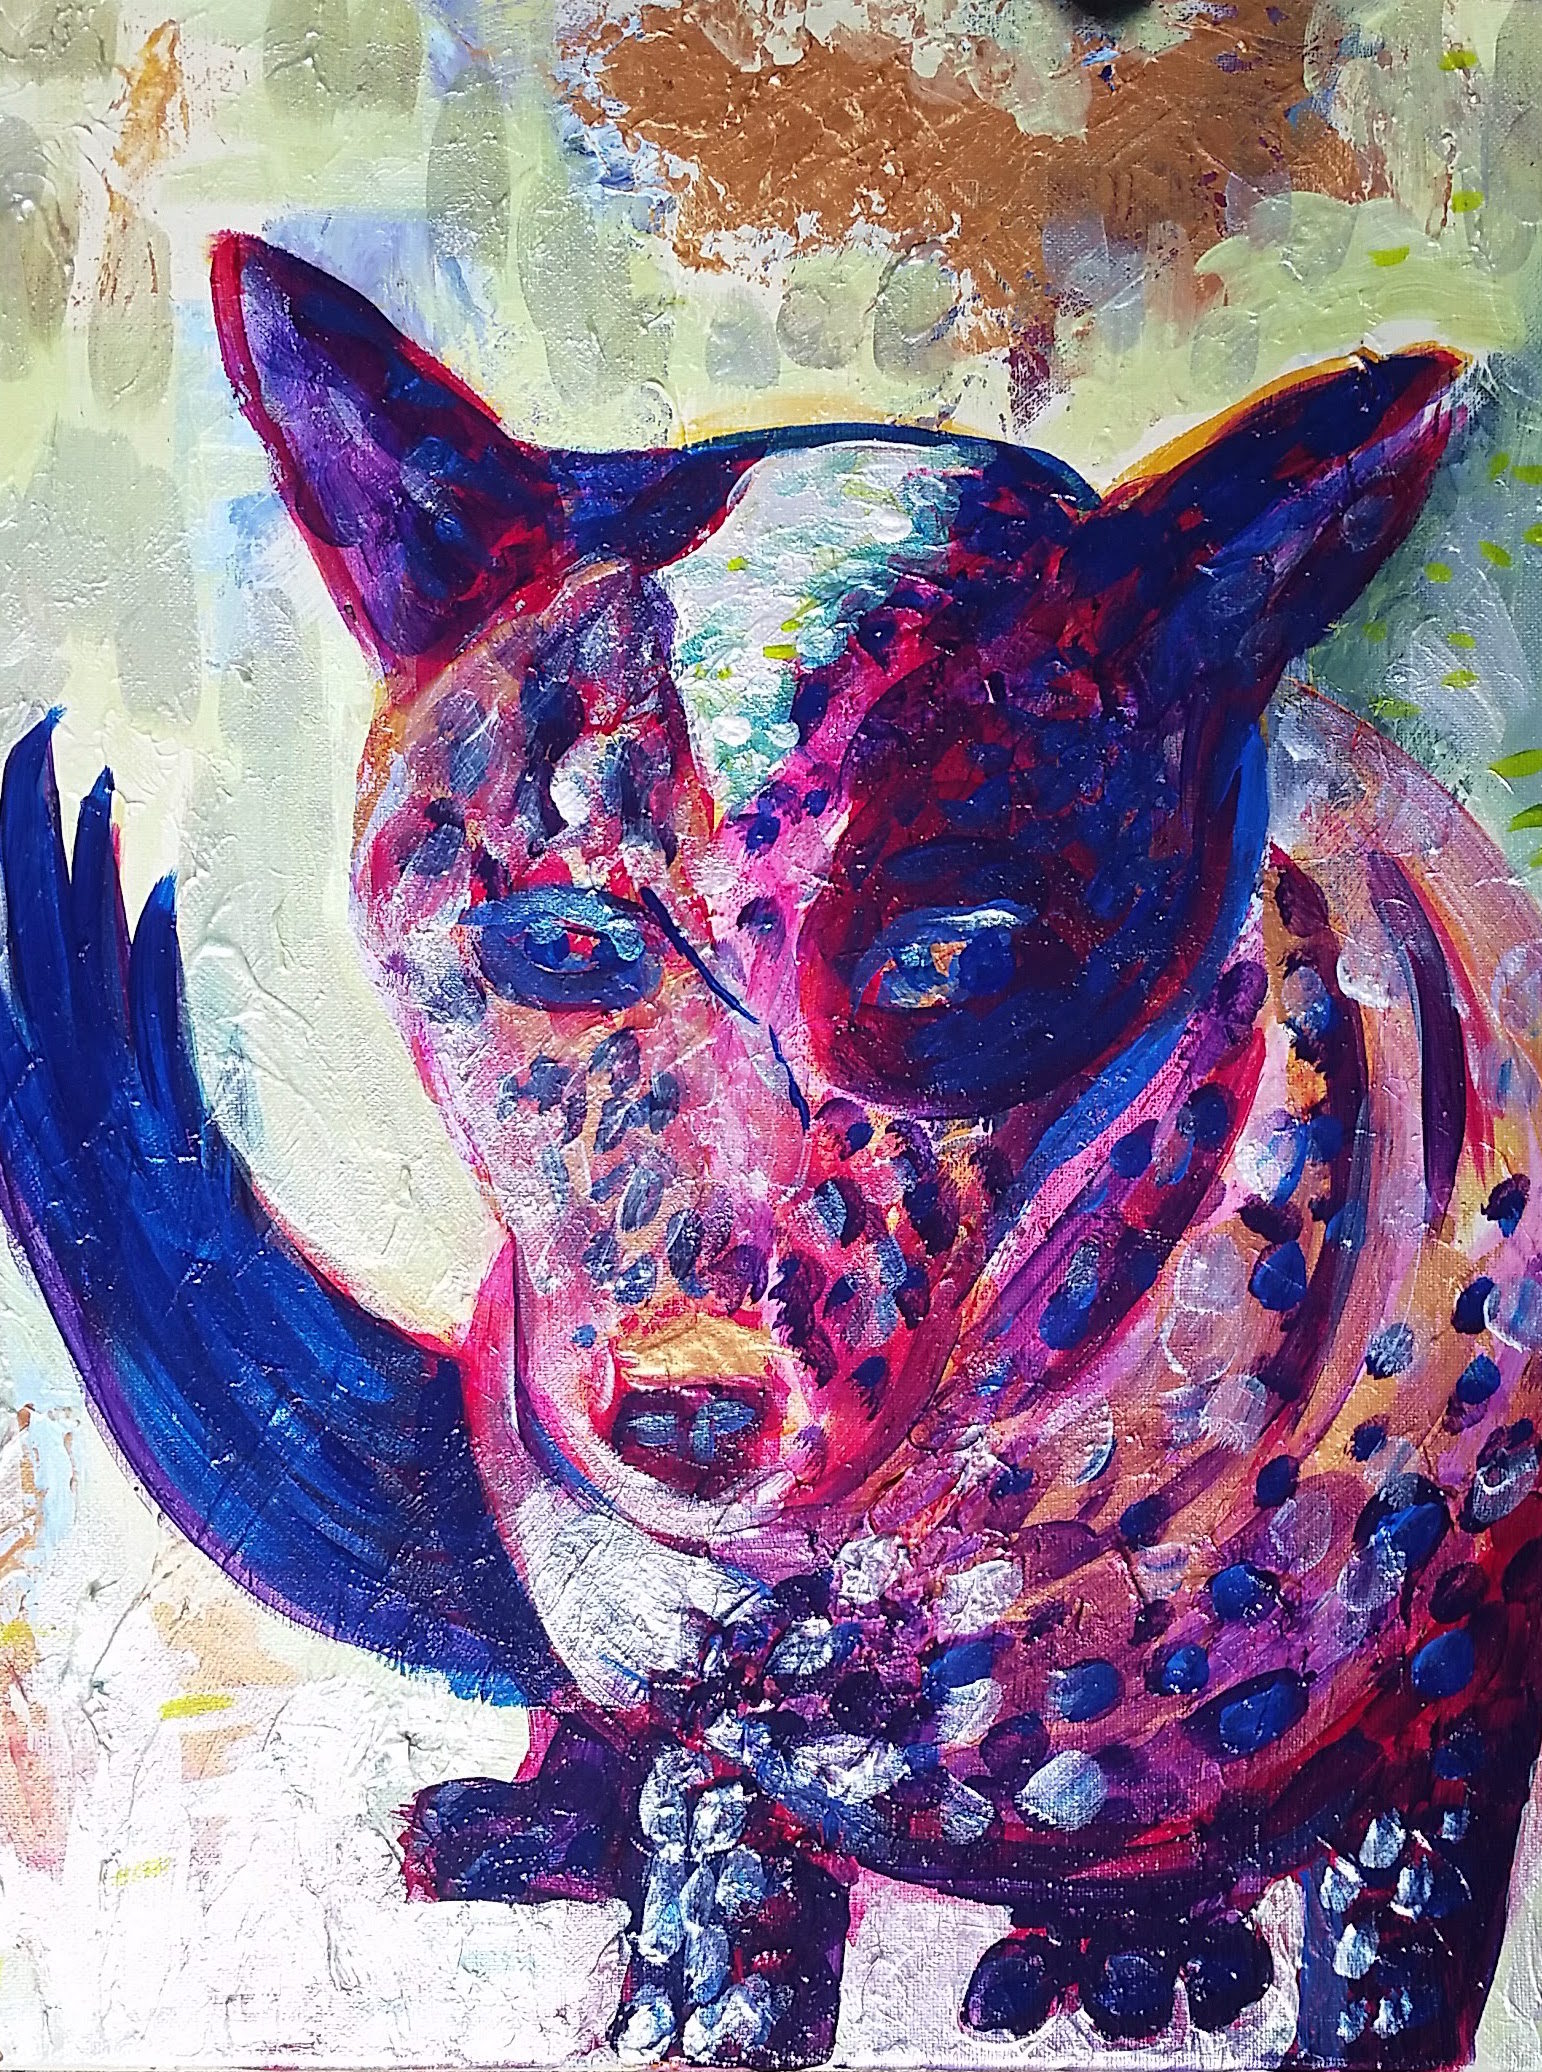 May 2 - blue heeler dog, acrylic on canvas